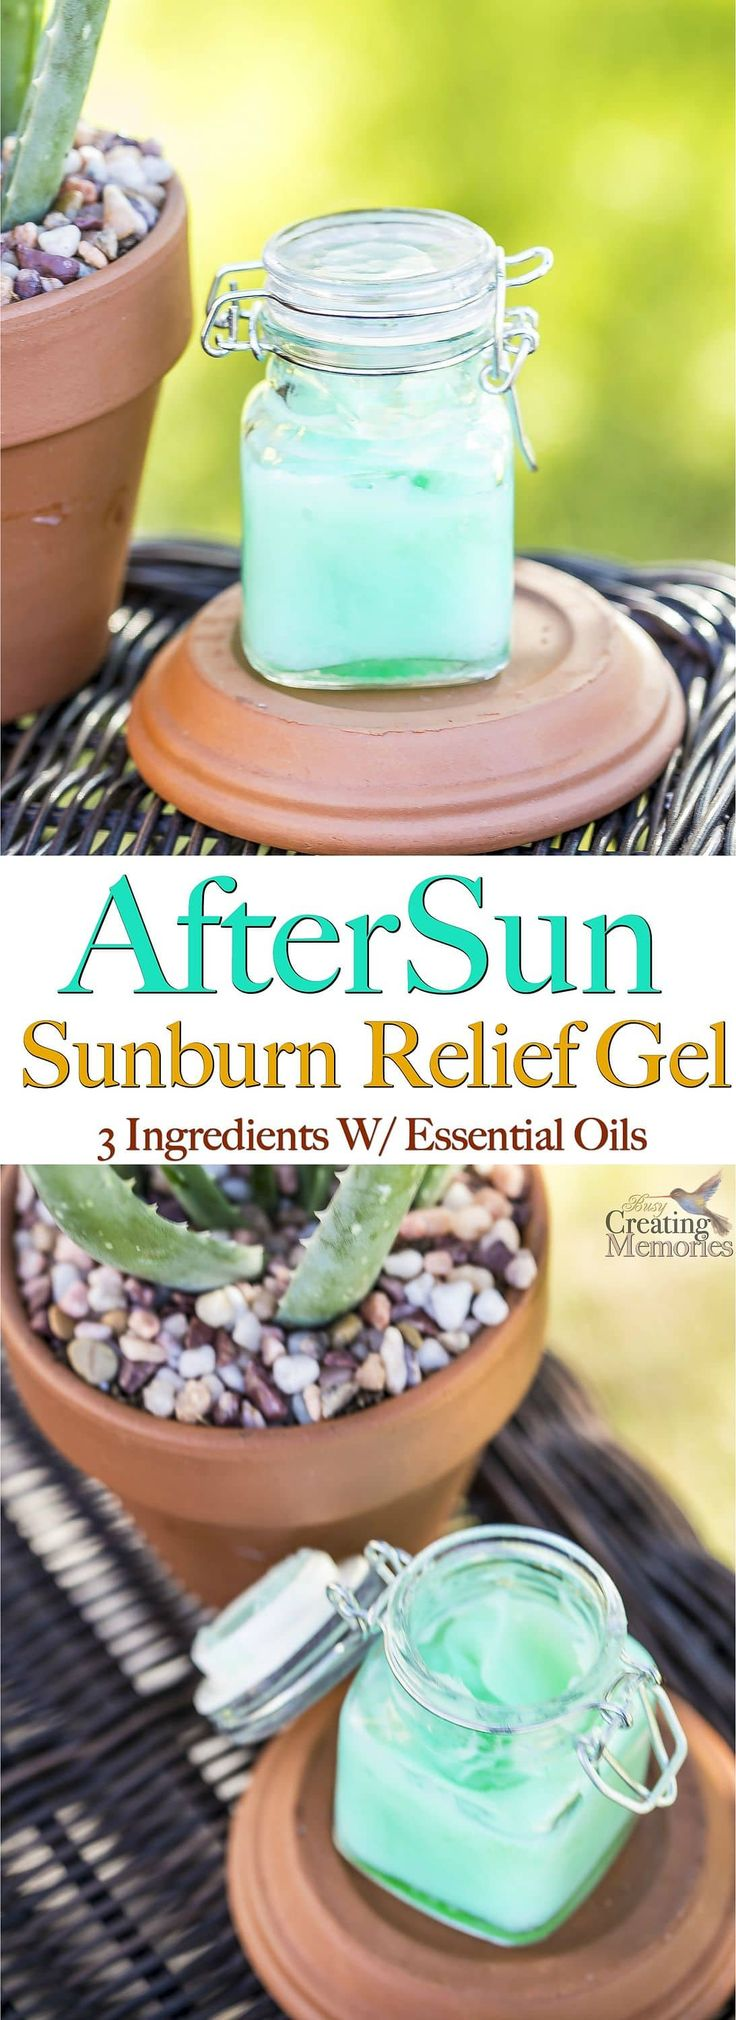 Say Goodbye to Painful, Itchy, Peeling sunburns and hello to fabulous summer skin care after the sun! This DIY AfterSun Sunburn relief Gel is the BEST as it instantly Soothes, Cools, heals and moisturizes your skin for quick healing. It is homemade with 3 natural ingredients such as Aloe Vera and essential Oils. Plus it makes great gifts! via @2creatememories